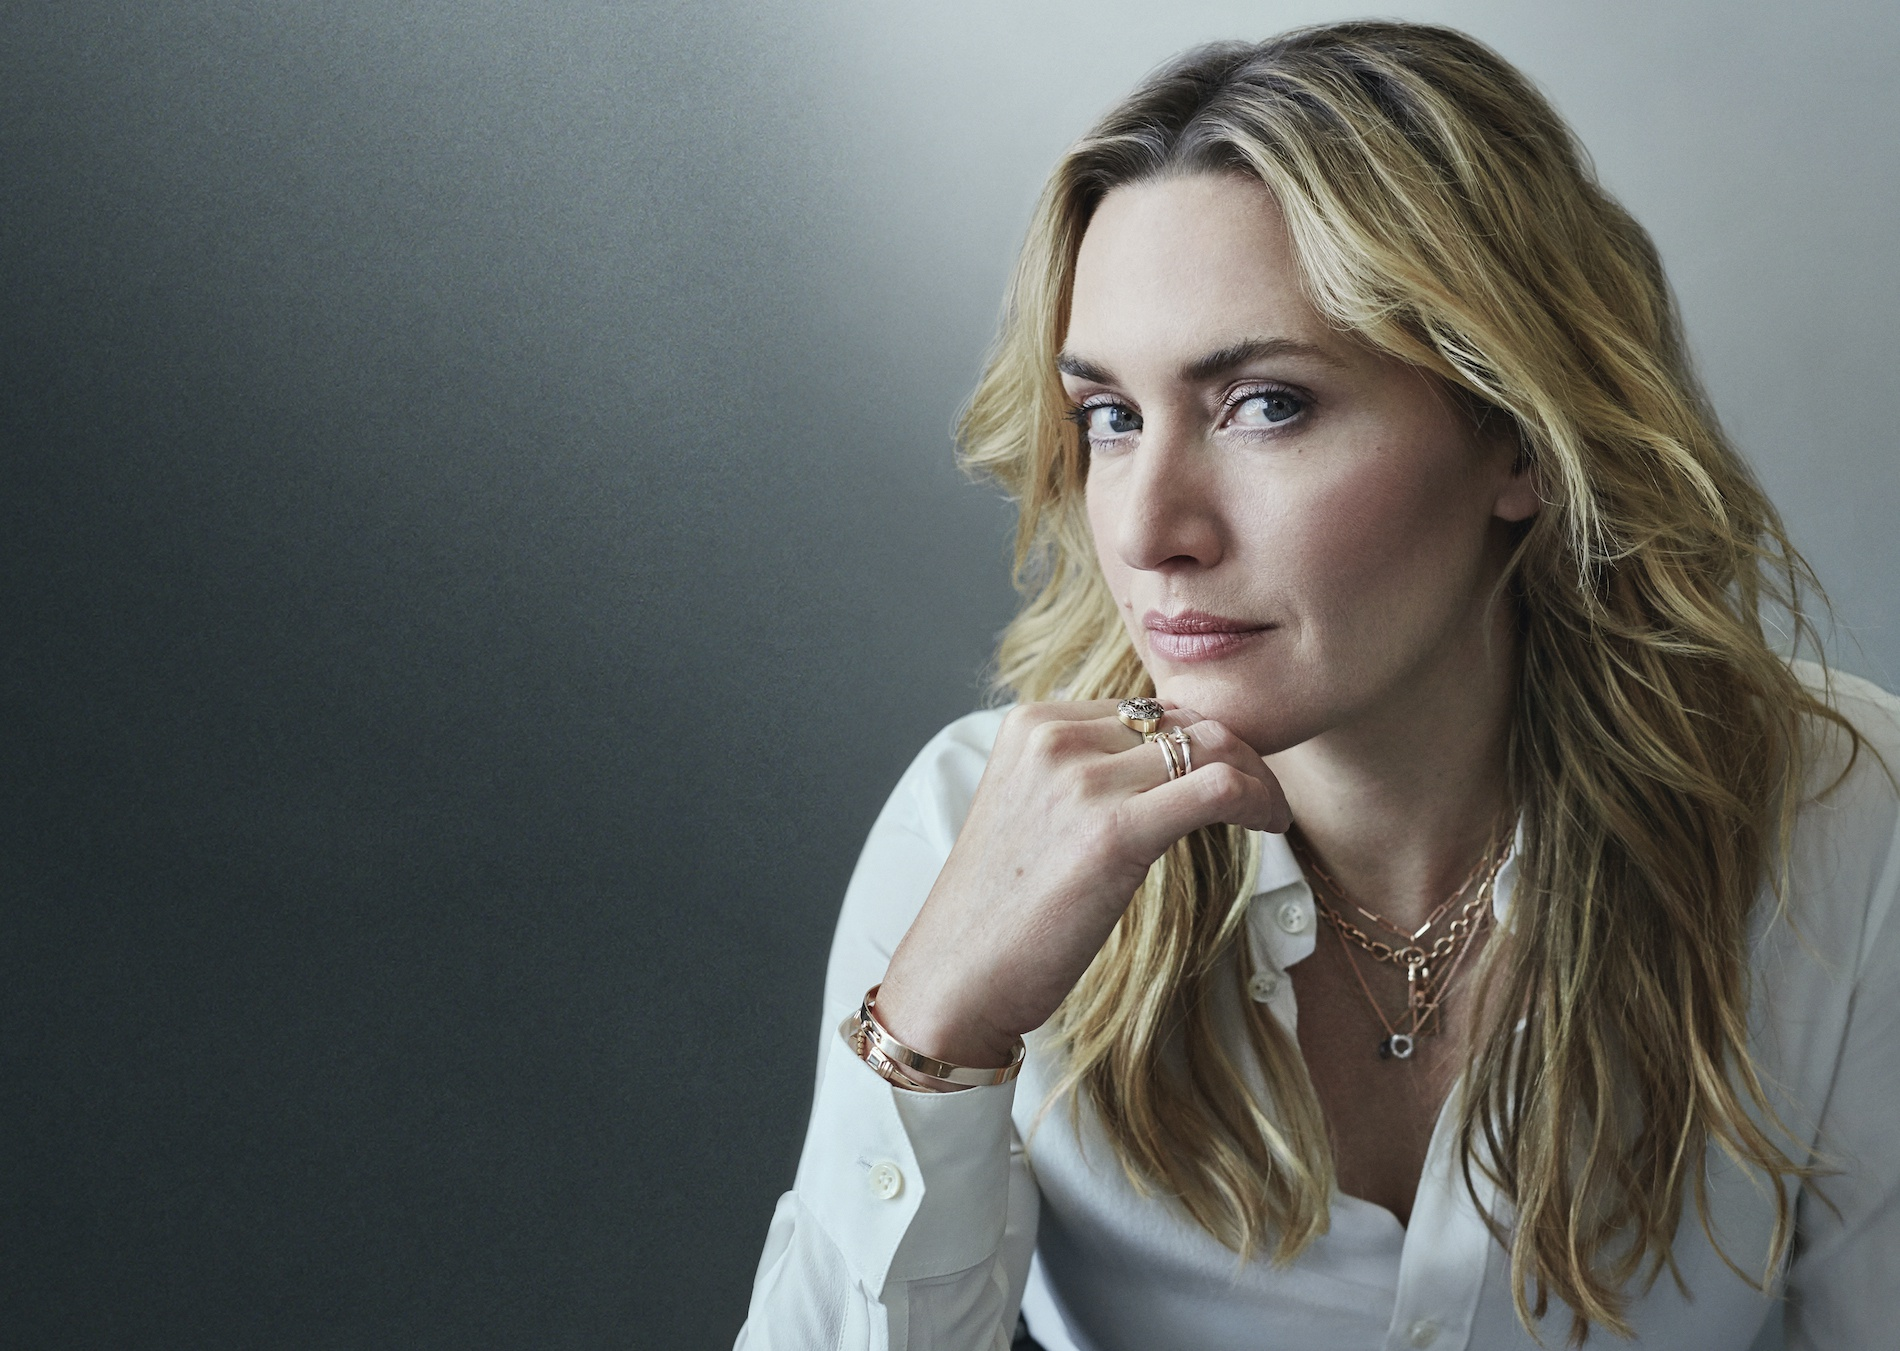 Kate Winslet's Road Map to Building a Life in the Performing Arts